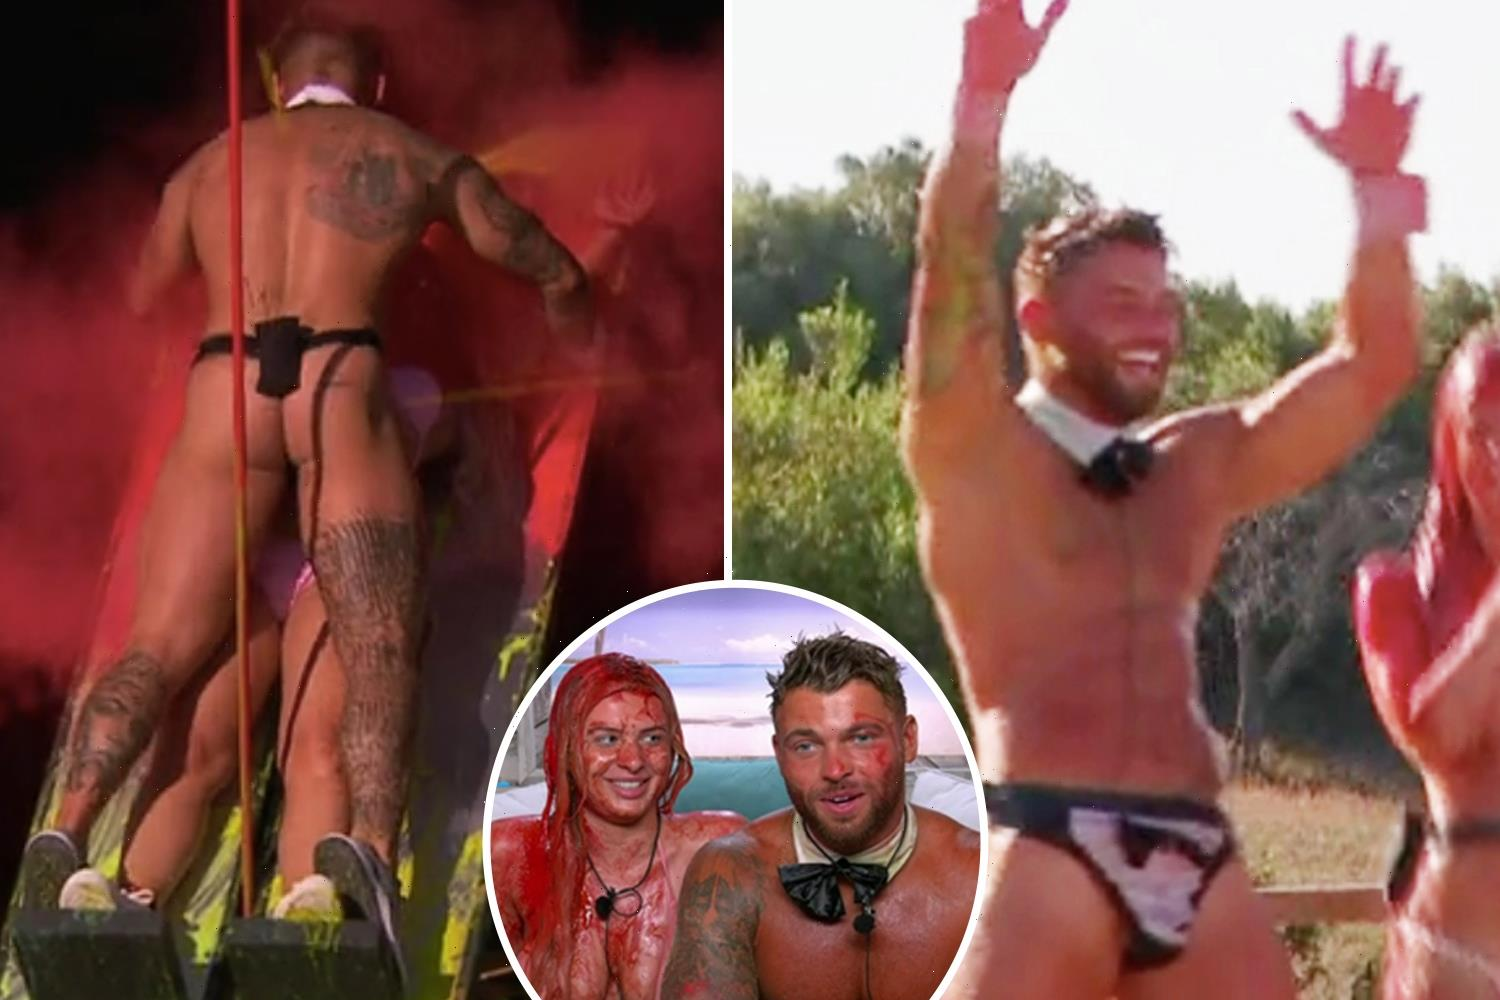 Love Island fans stunned by Jake's bulge as boys strip to tiny pants for task